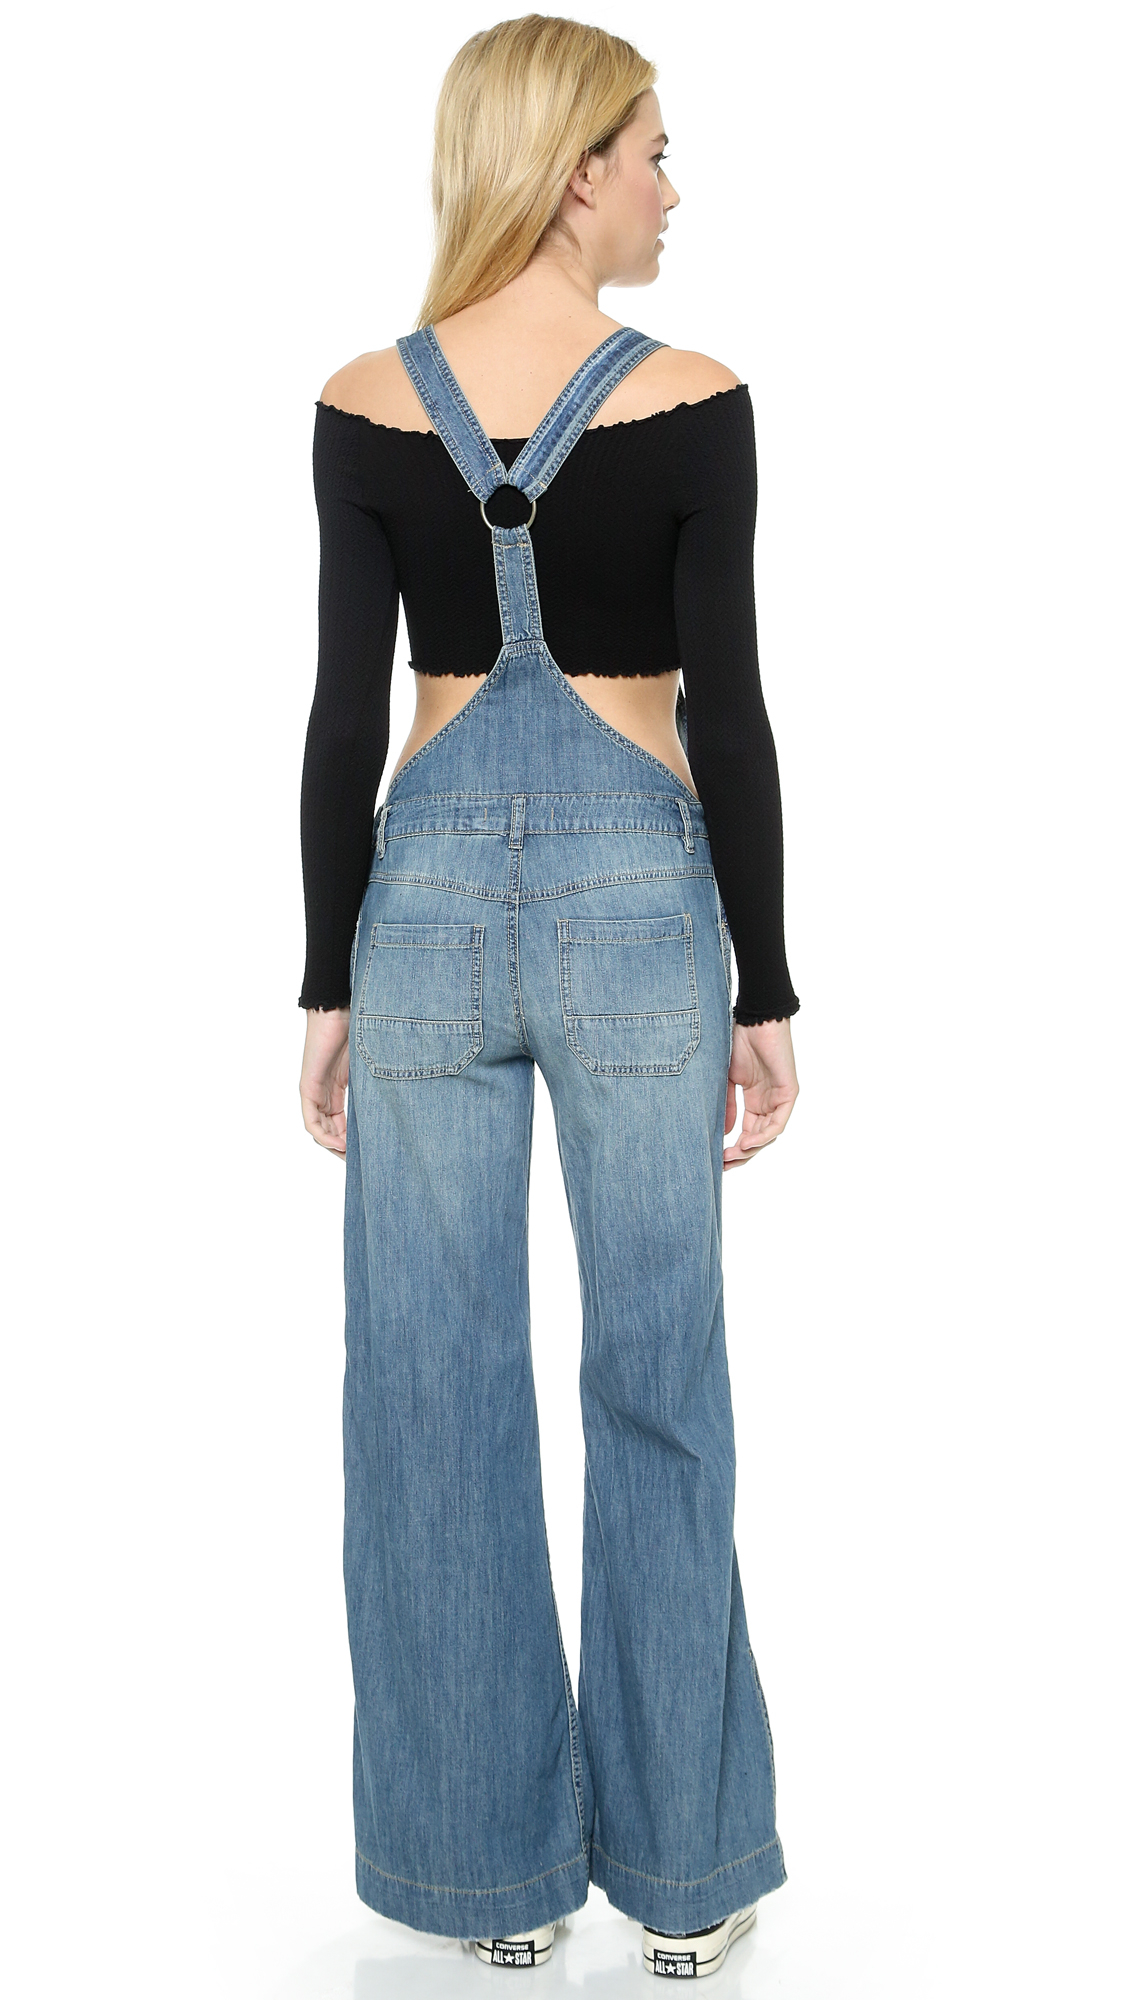 5ec888f49f7 Lyst - Free People Washed Chambray D Ring Back Overalls - Bee Wash ...